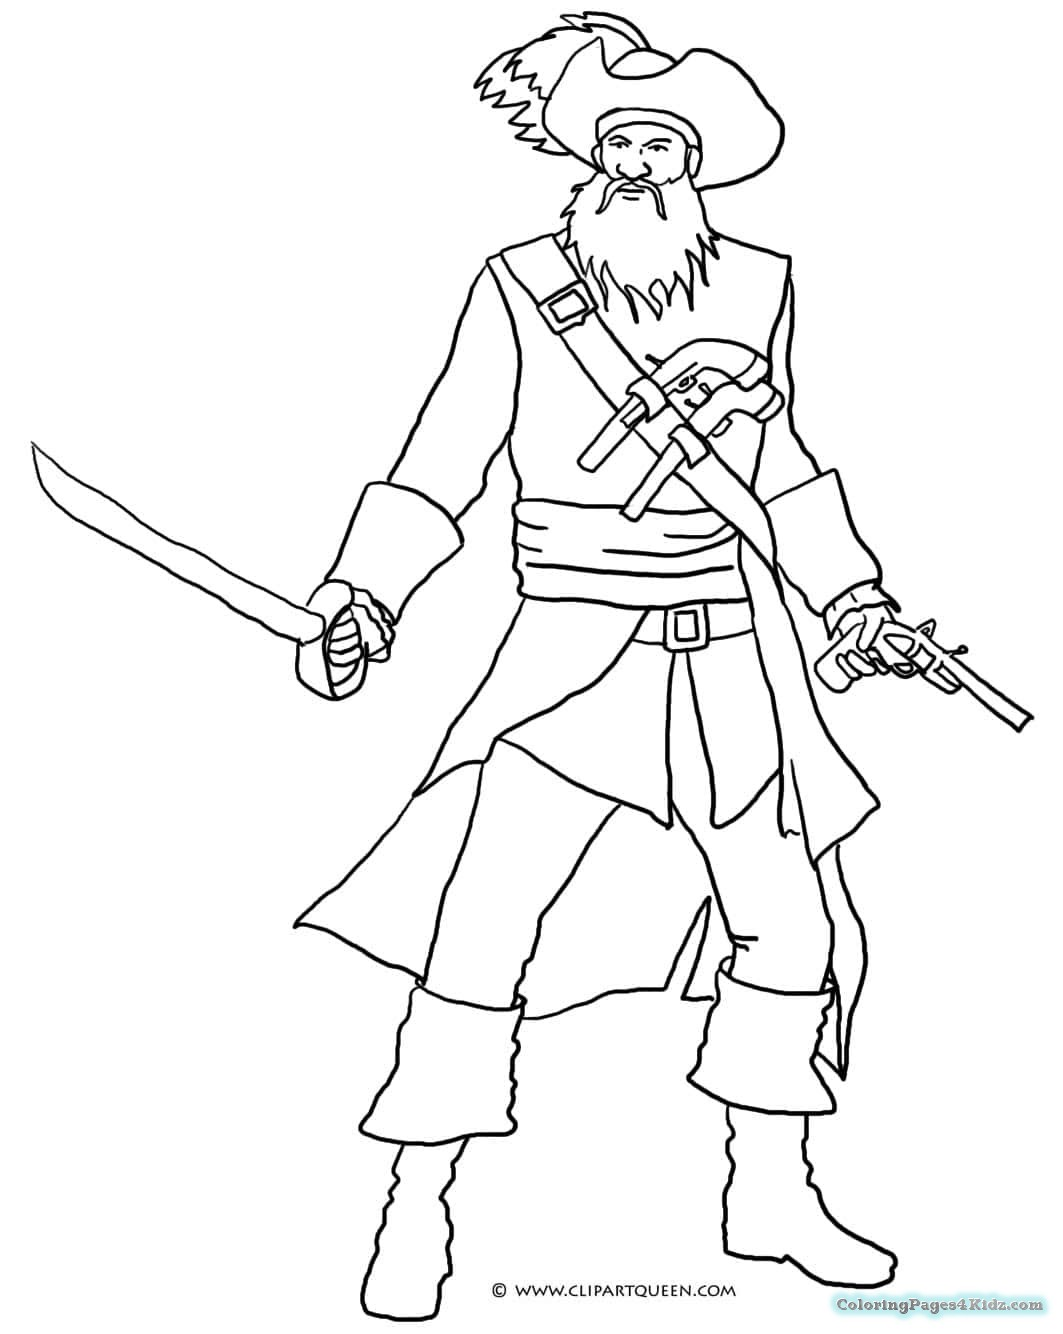 pirate images to color pirates coloring pages download and print pirates color pirate to images